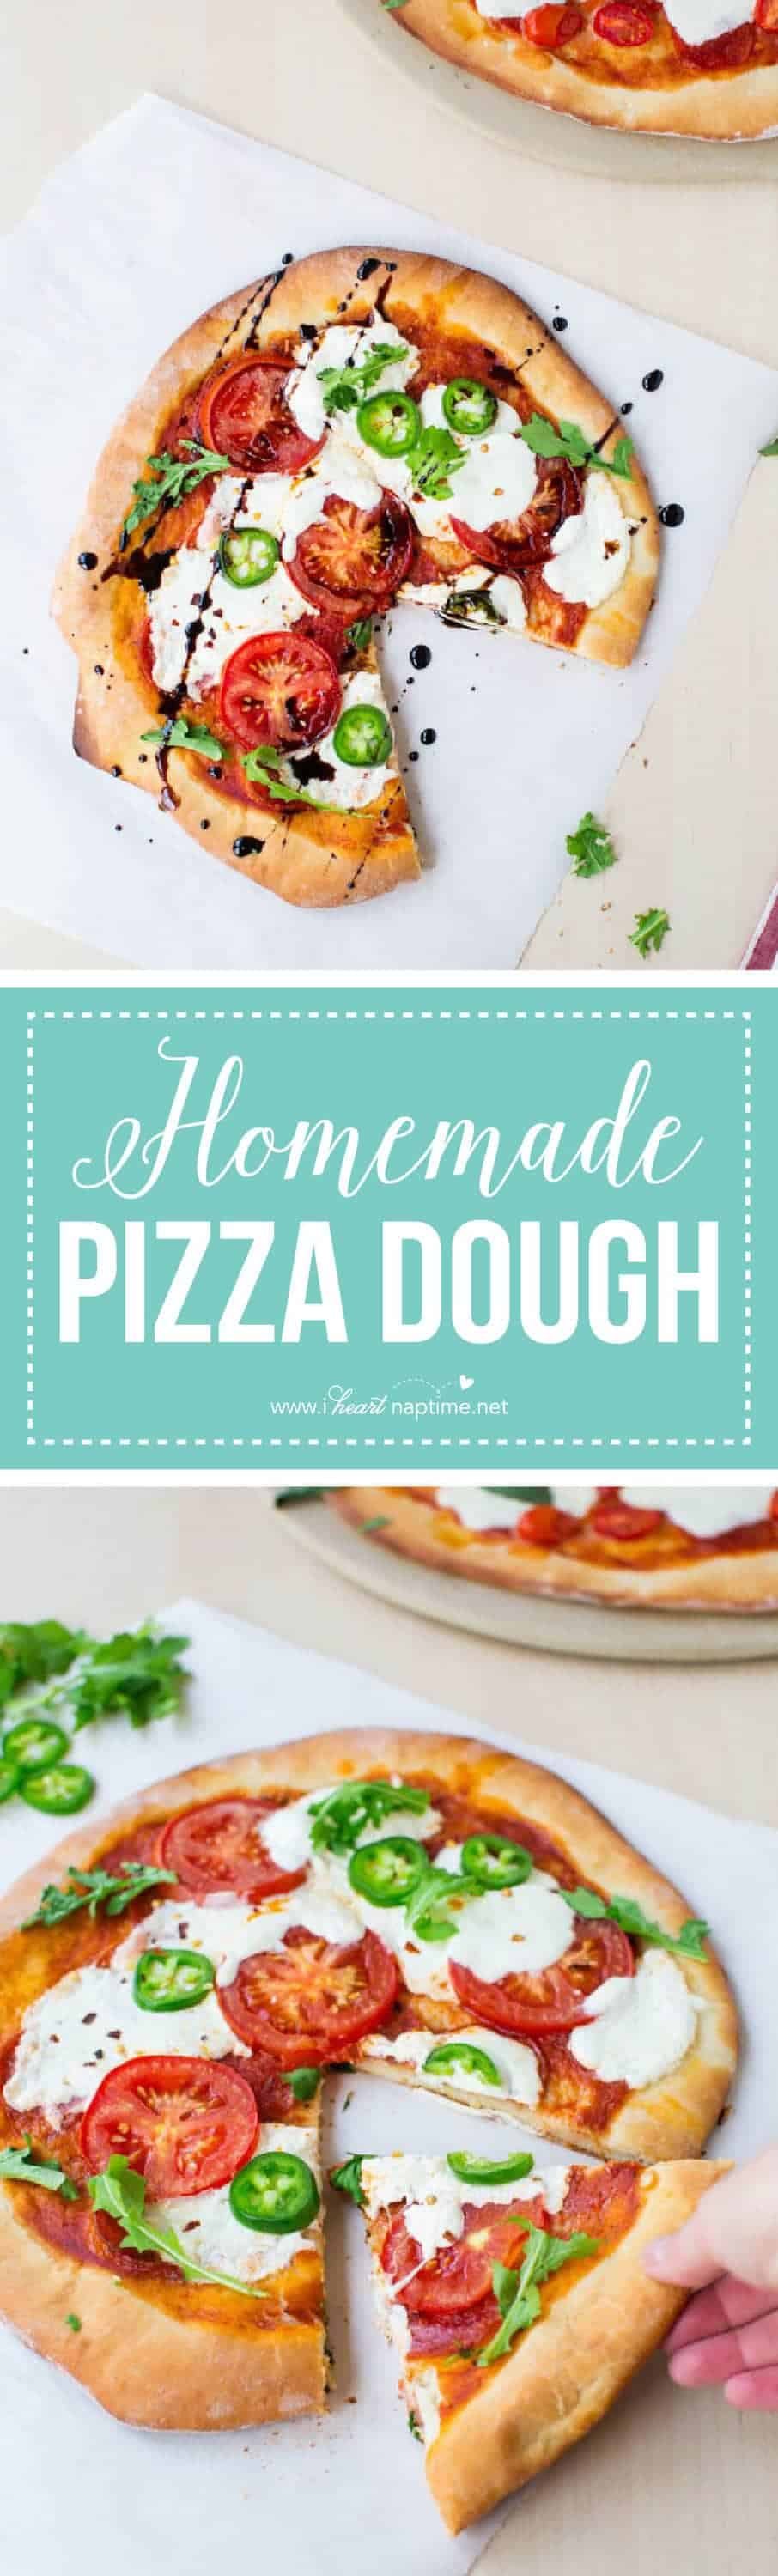 I'm excited to share my favorite Homemade Pizza Dough recipe with you today! I shared this recipe in the I Heart Naptime Cookbook and get to give you a little sneak peak of the book today as well. Yay!